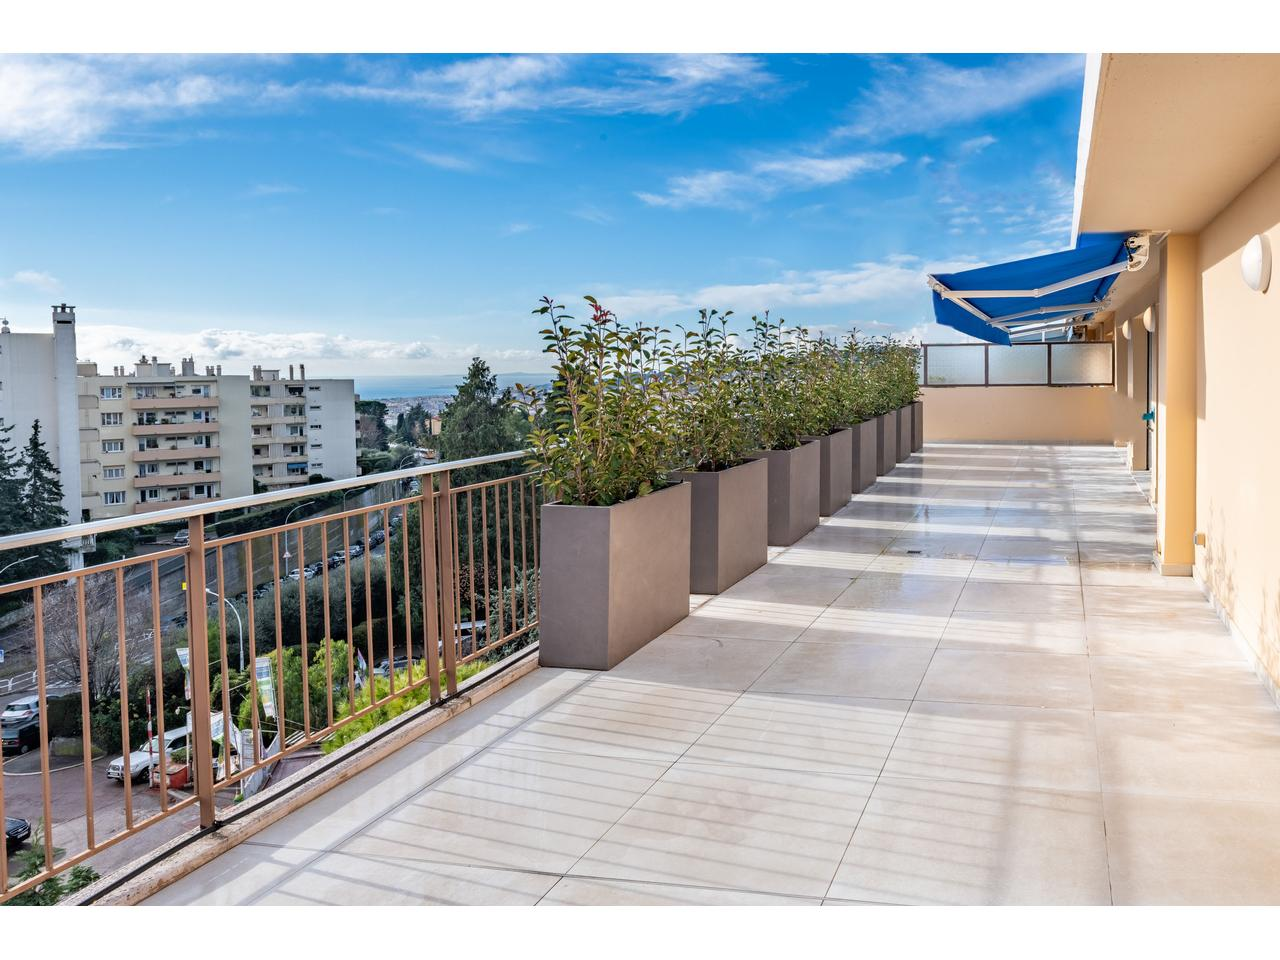 4 Pieces Toit Terrasse Nice Immobilier Nice Vue Mer Appartement Nice Appartement 4 Pieces